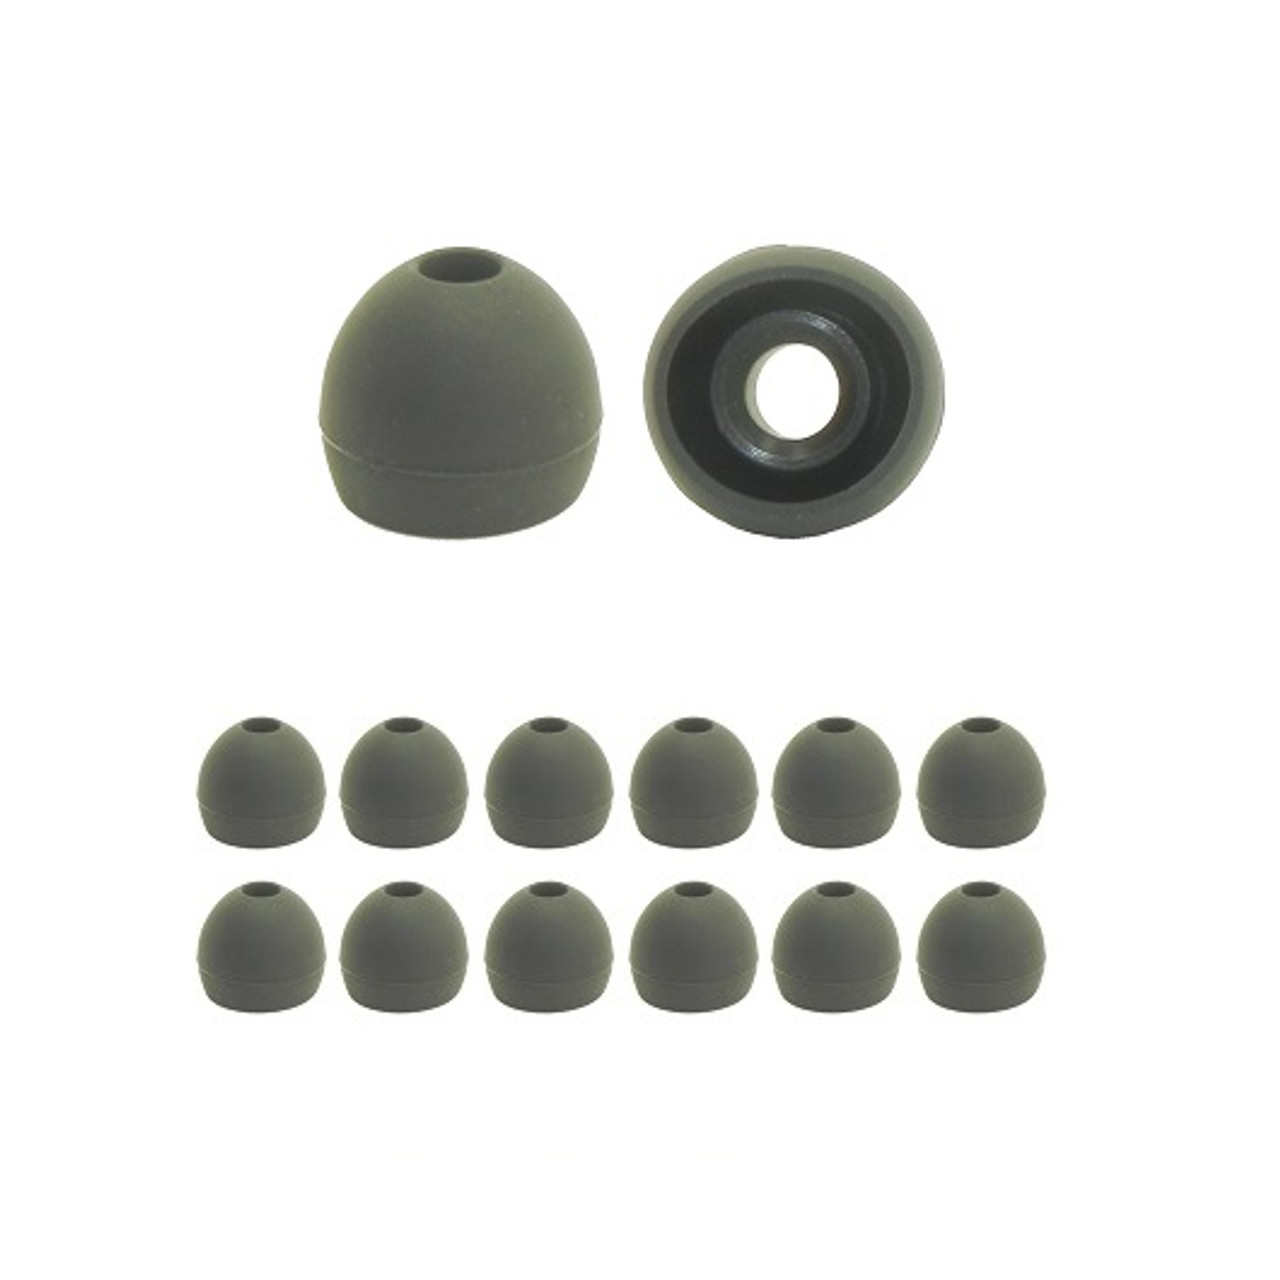 LG Tone replacement ear tips